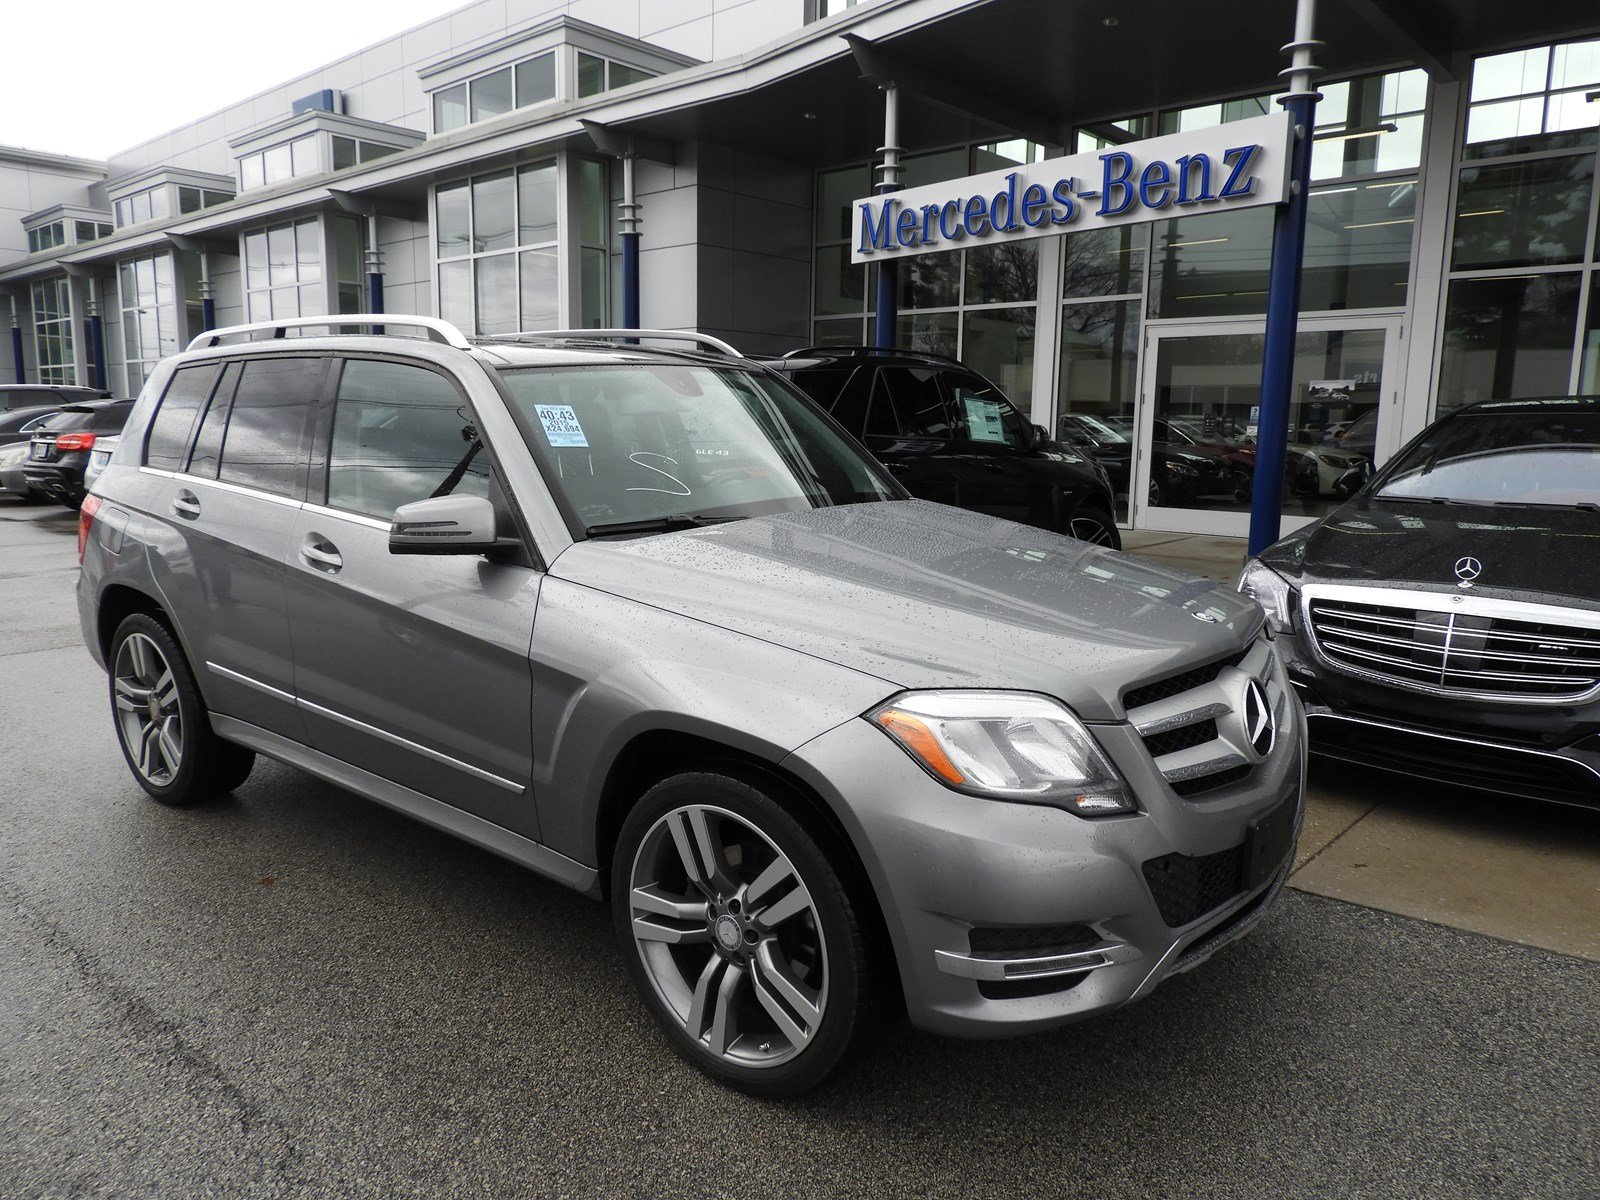 certified pre owned 2015 mercedes benz glk glk 350 4matic suv sport utility in louisville. Black Bedroom Furniture Sets. Home Design Ideas